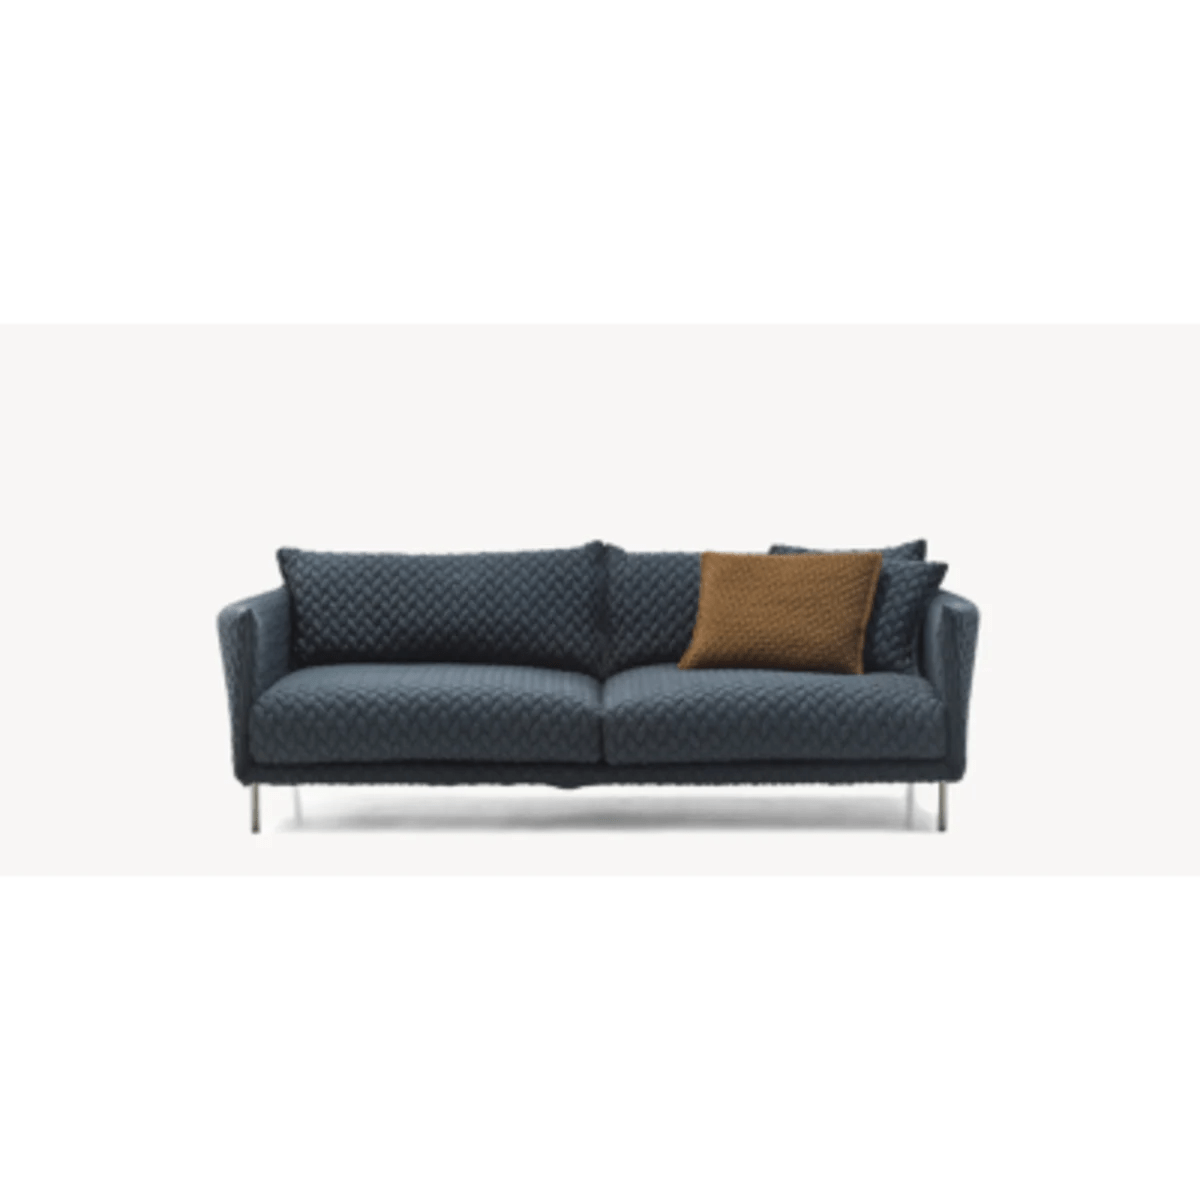 Living Divani Sofa Price Gentry 2 Seater Sofa 180 X 105 A7320 Units 1 Merlino Beige Steel